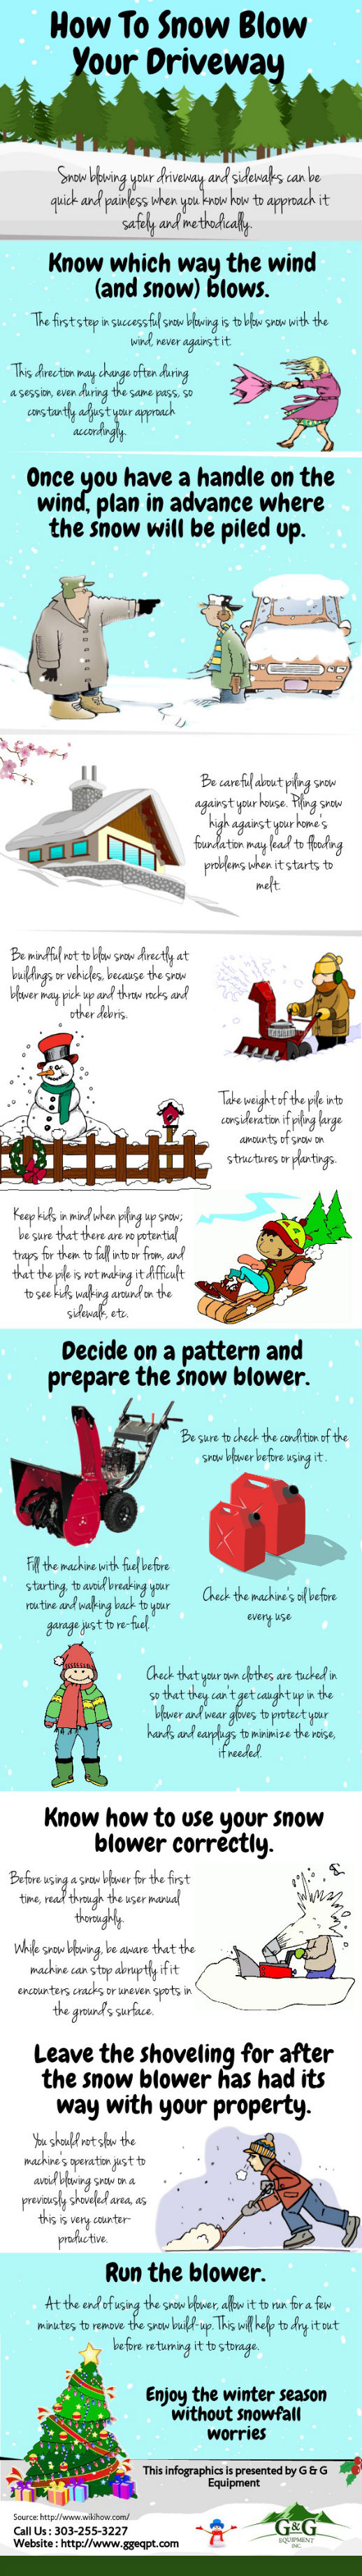 ggeqpt-snowblowers-infographics1 (1)